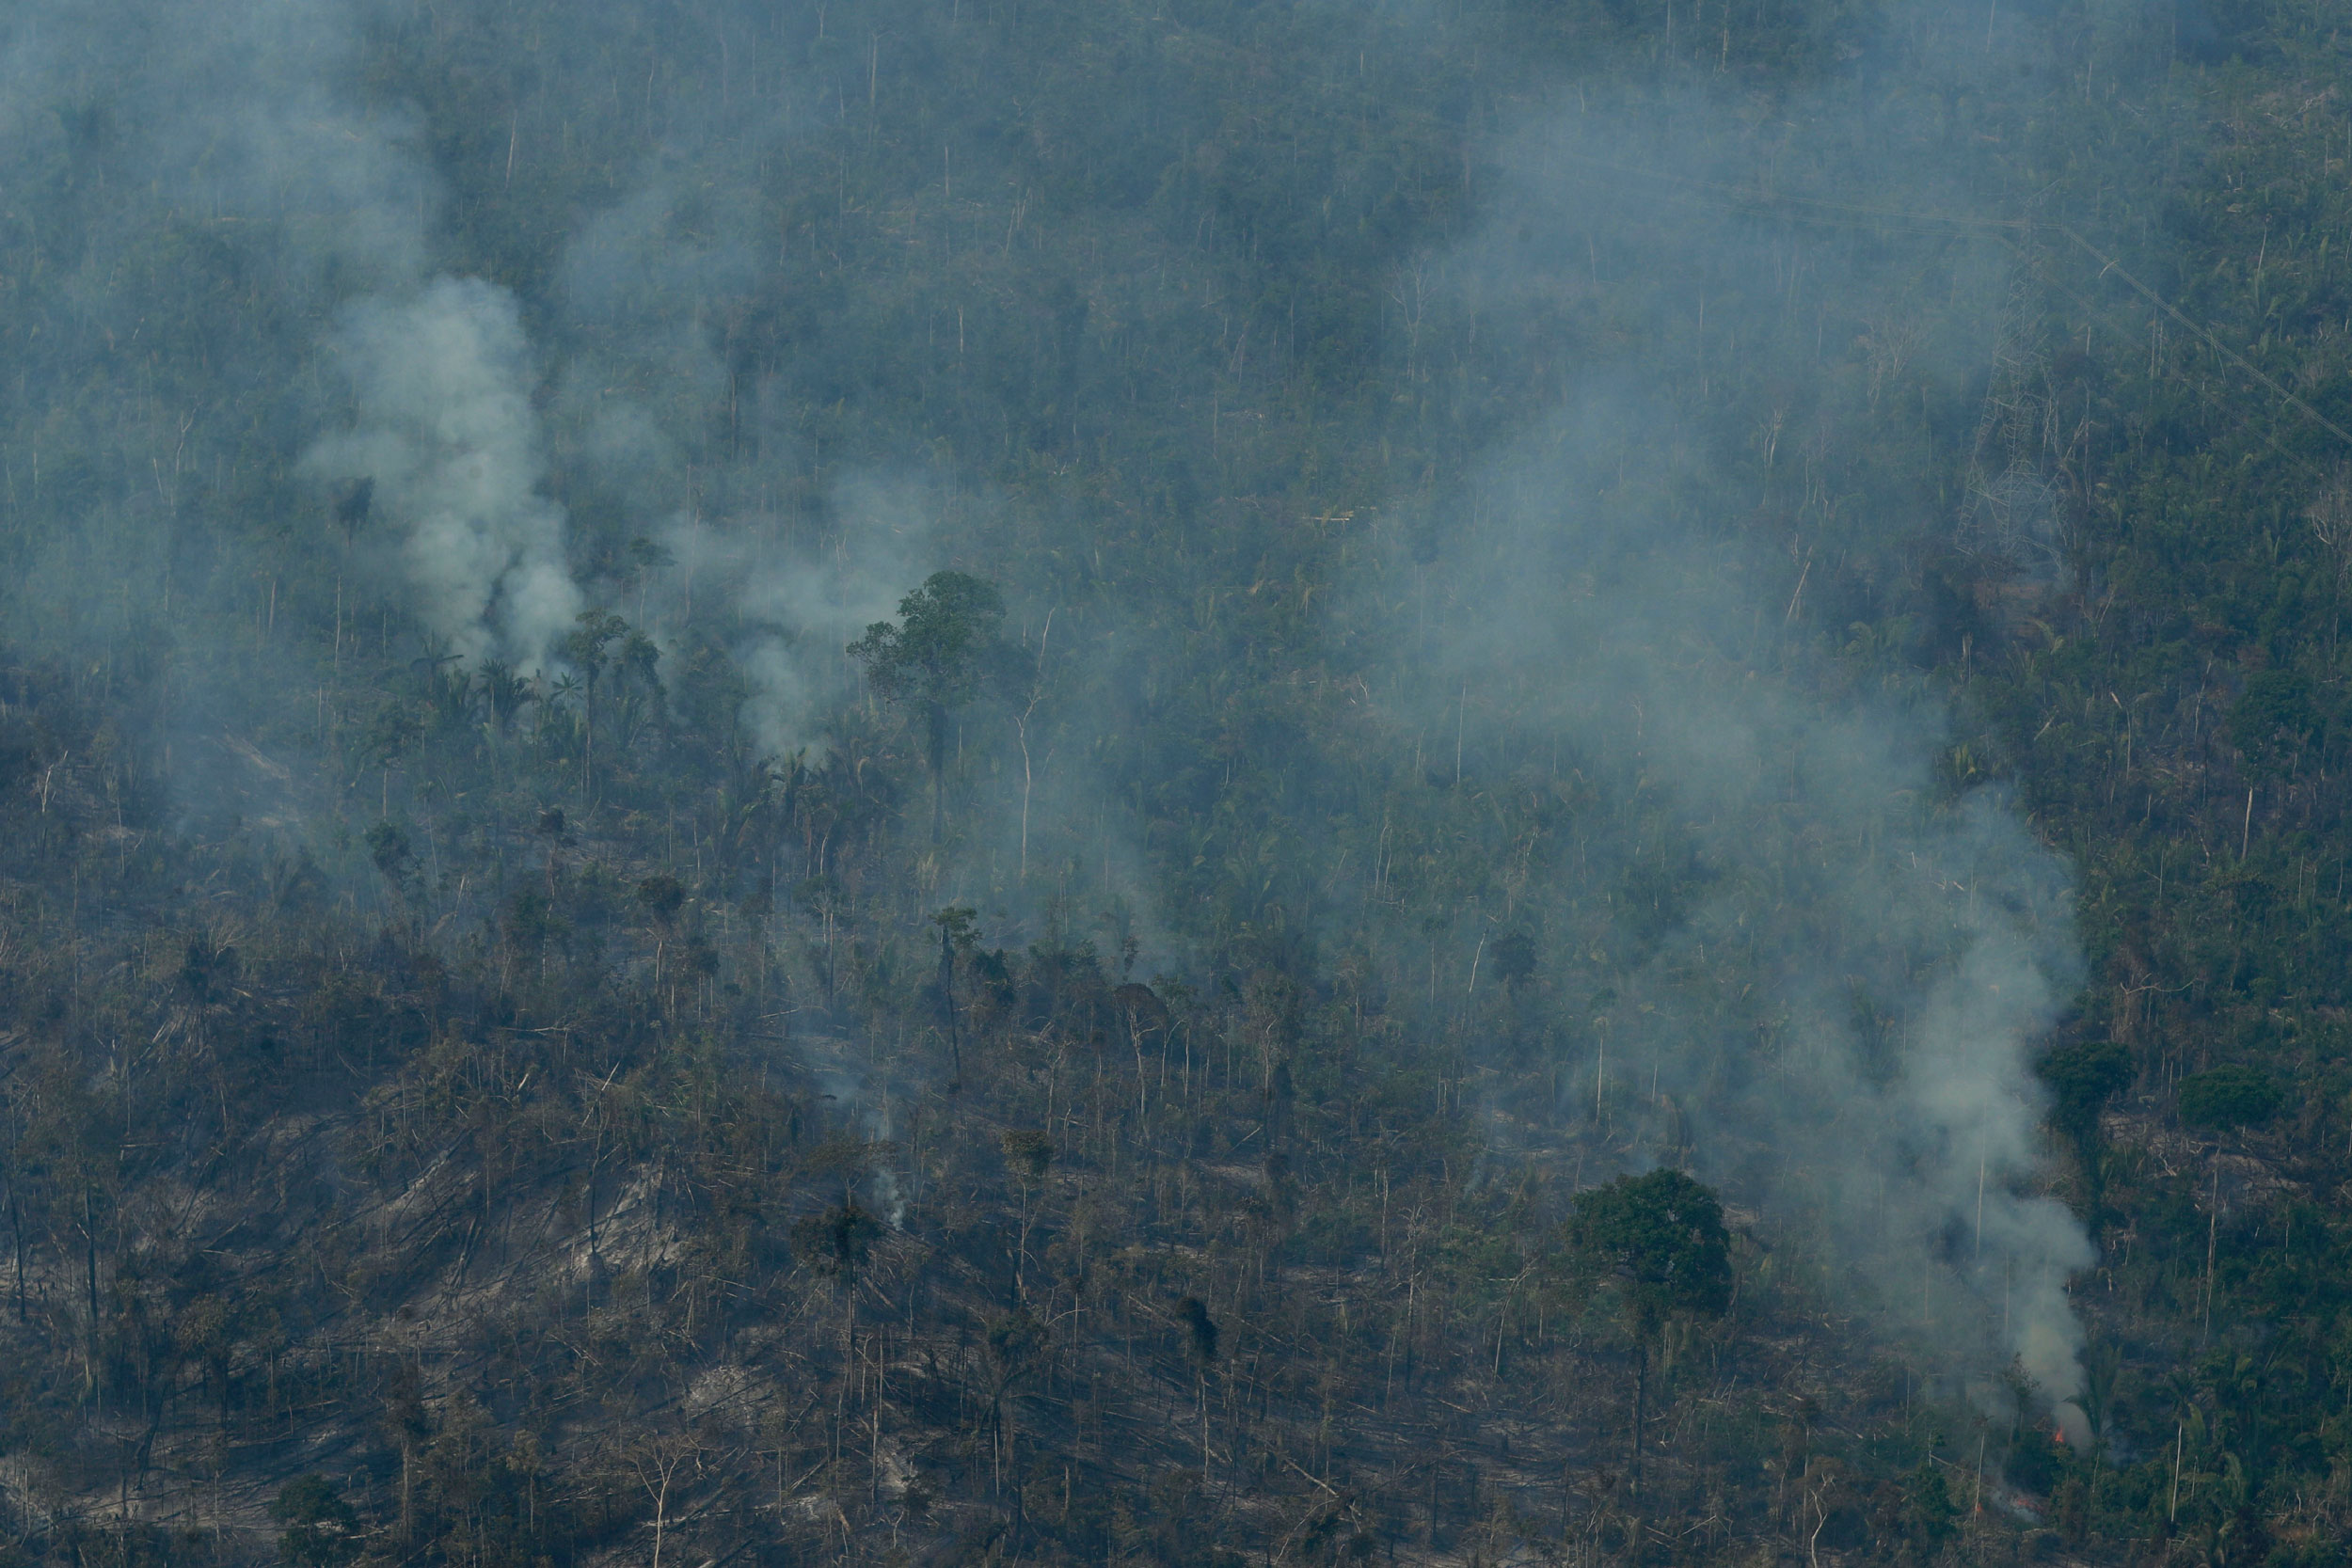 Fire consumes an area near Jaci Parana, state of Rondonia, Brazil, on August 24, 2019.